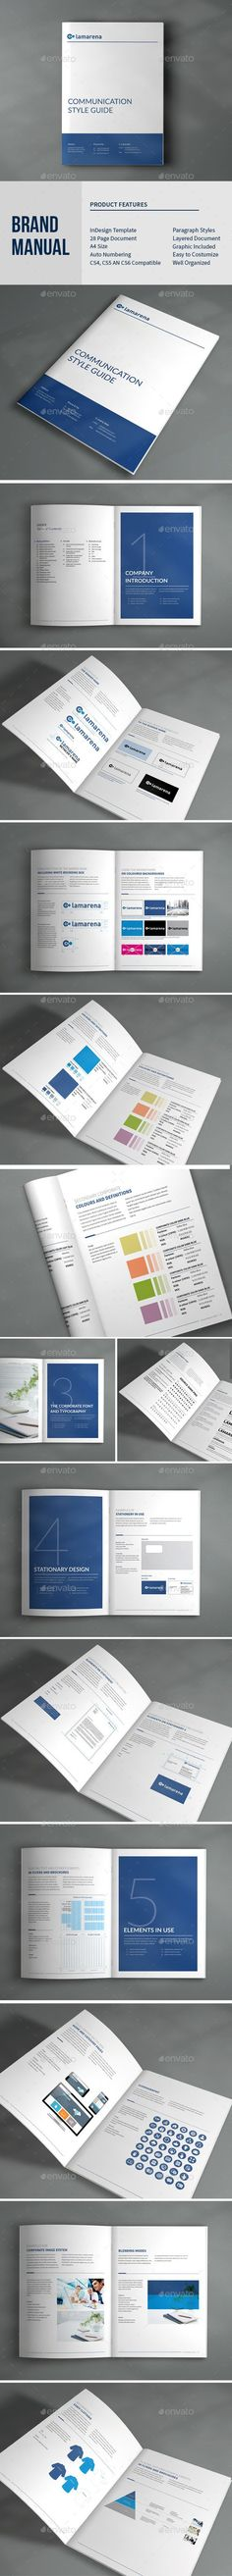 Brand Manual Brochure Template InDesign INDD #design Download: http://graphicriver.net/item/brand-manual/13109035?ref=ksioks: